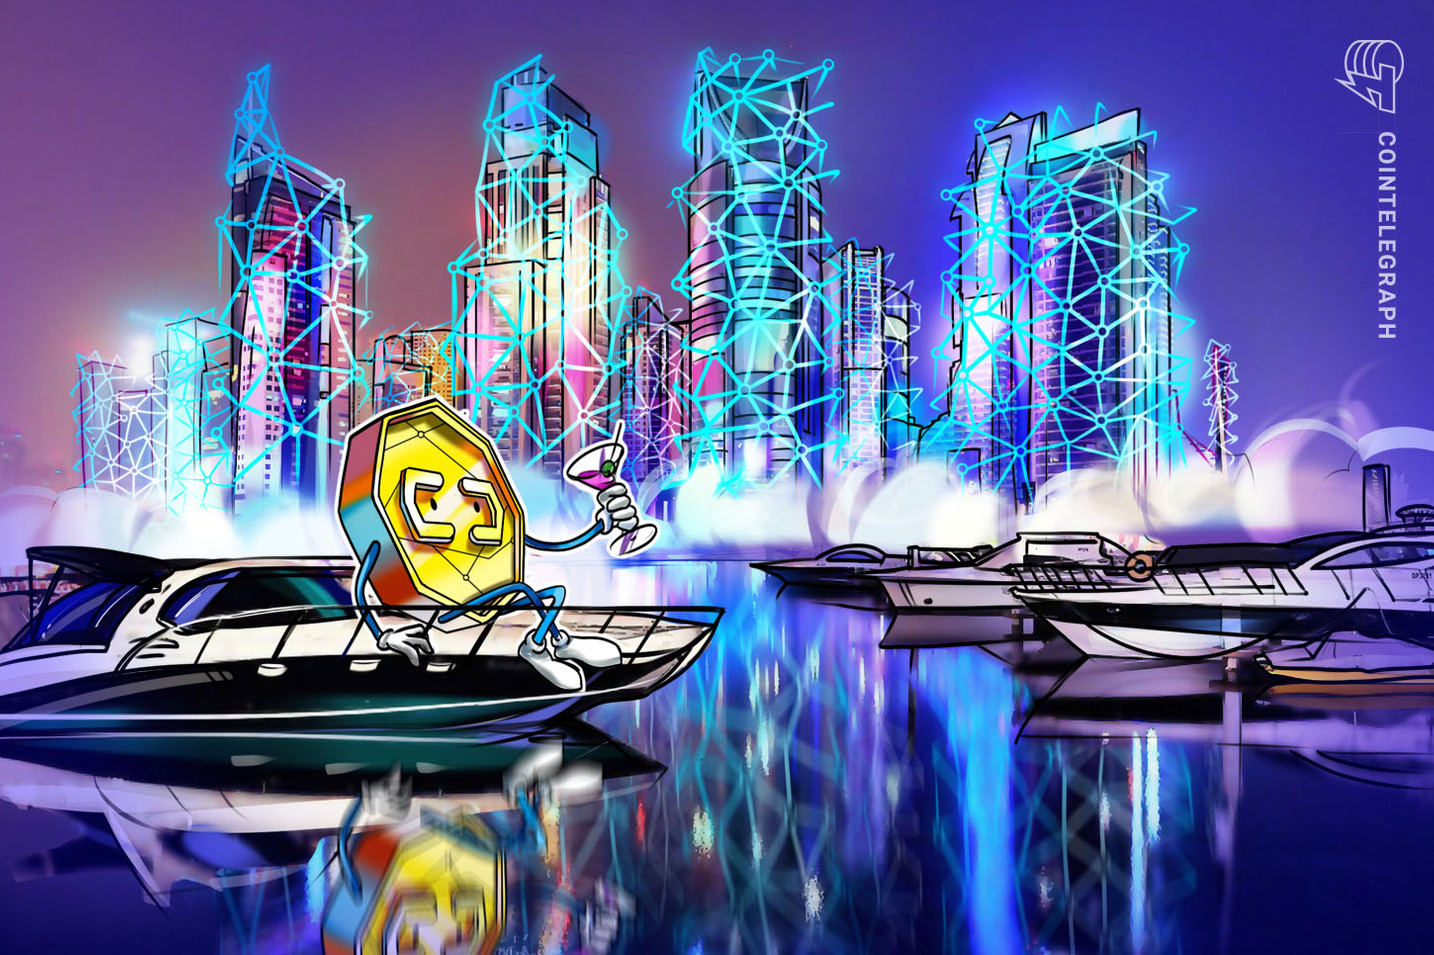 Dubai-based licensing company adopts cryptocurrency payments